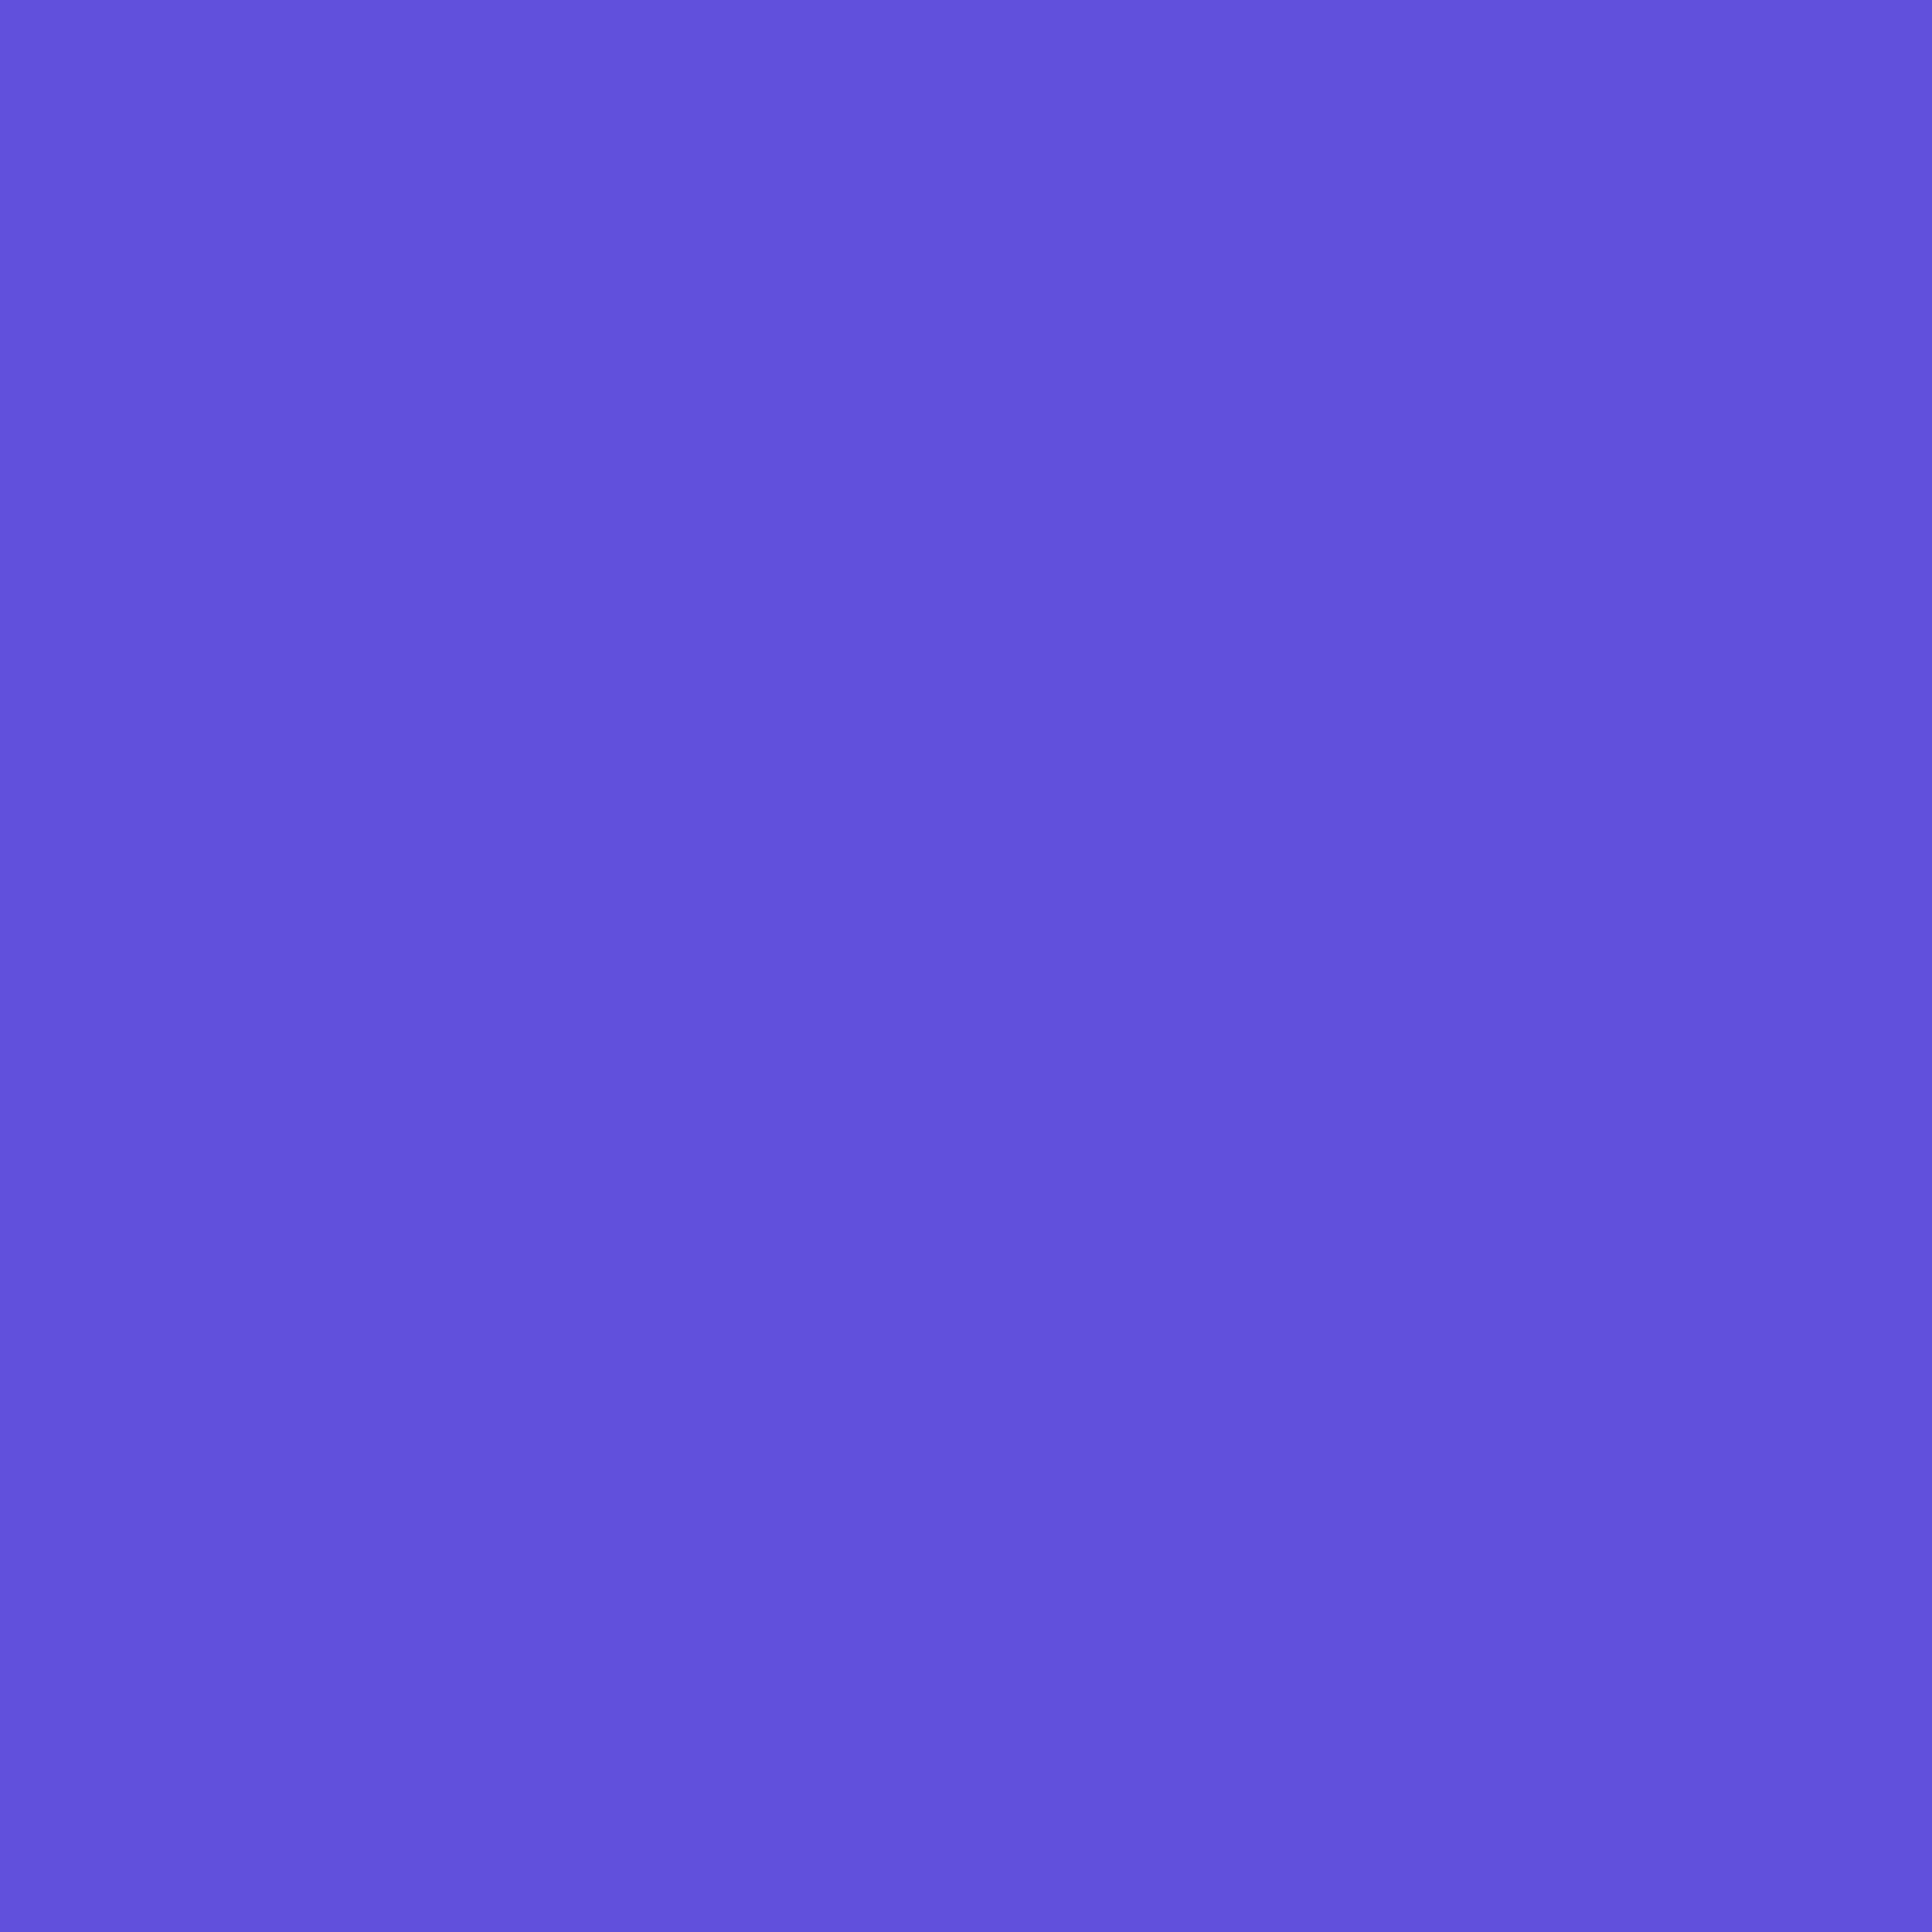 2048x2048 Majorelle Blue Solid Color Background